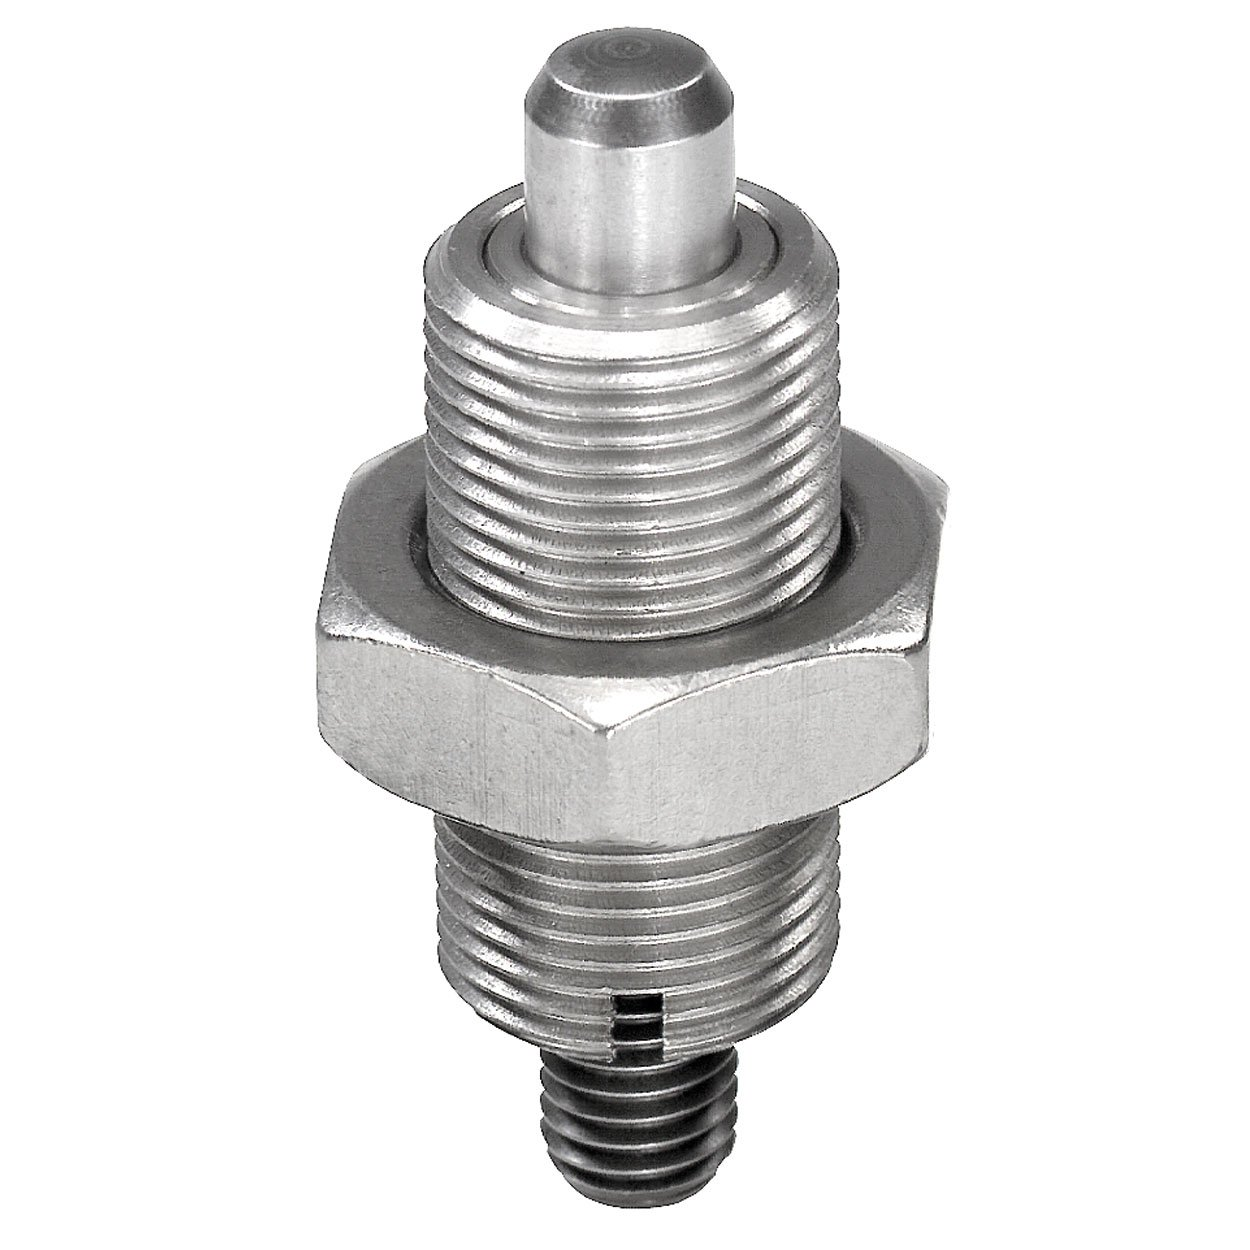 KIPP 03096-02412AO STAINLESS STEEL INDEXING PLUNGERS WITHOUT COLLAR THREADED PIN K STYLE LOCKING PIN HARDENED INCH 3   4-16 THREAD 66 MM LENGTH